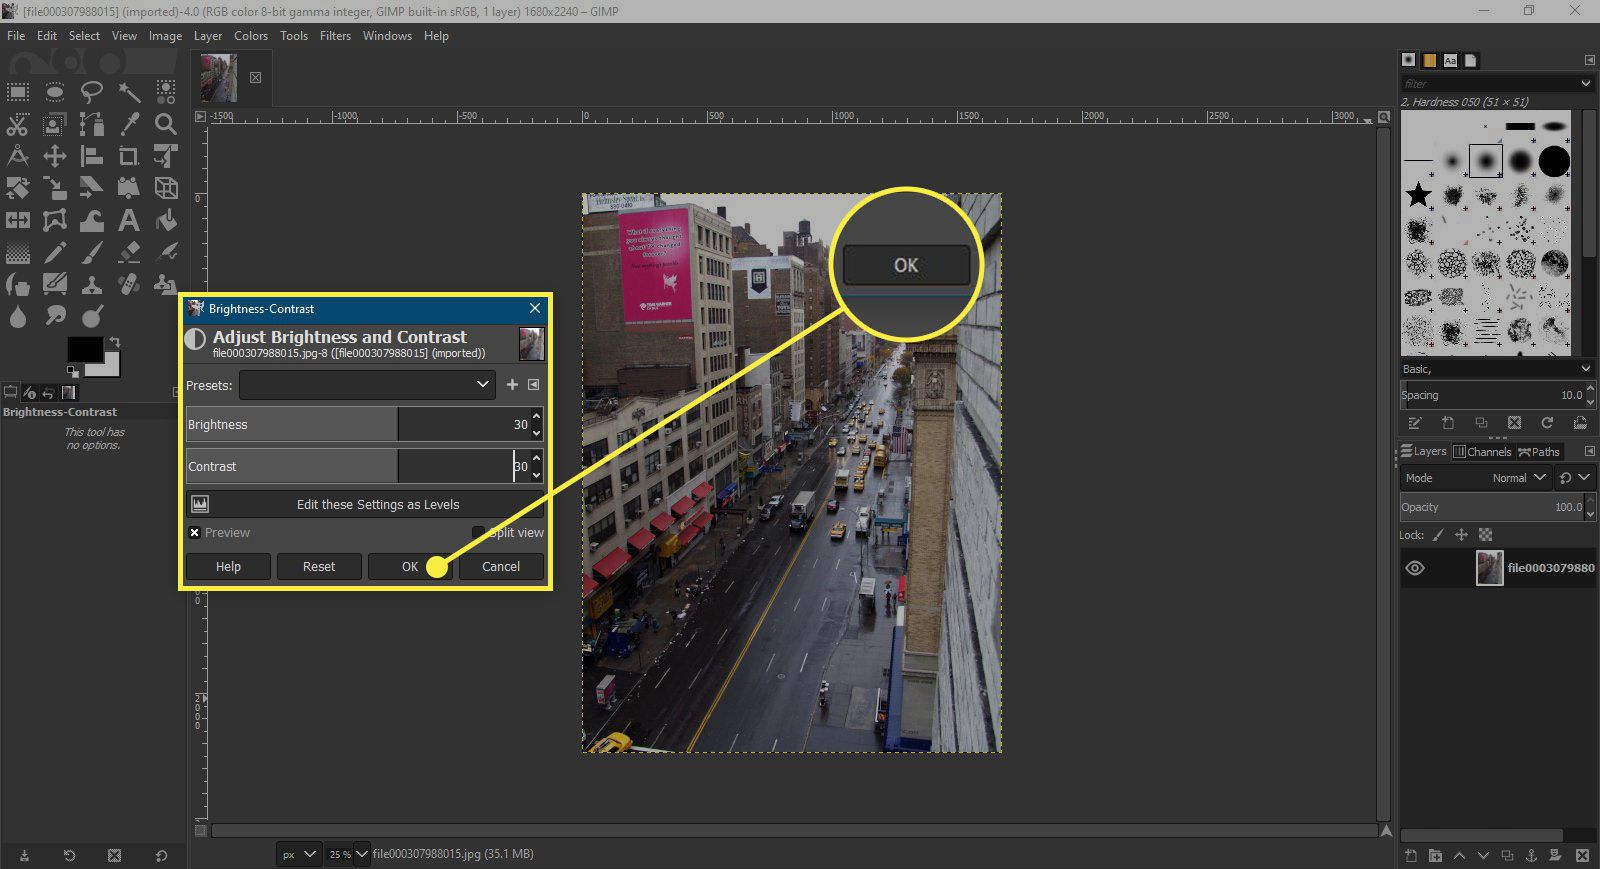 A screenshot of GIMP's Brightness/Contrast window with the OK button highlighted